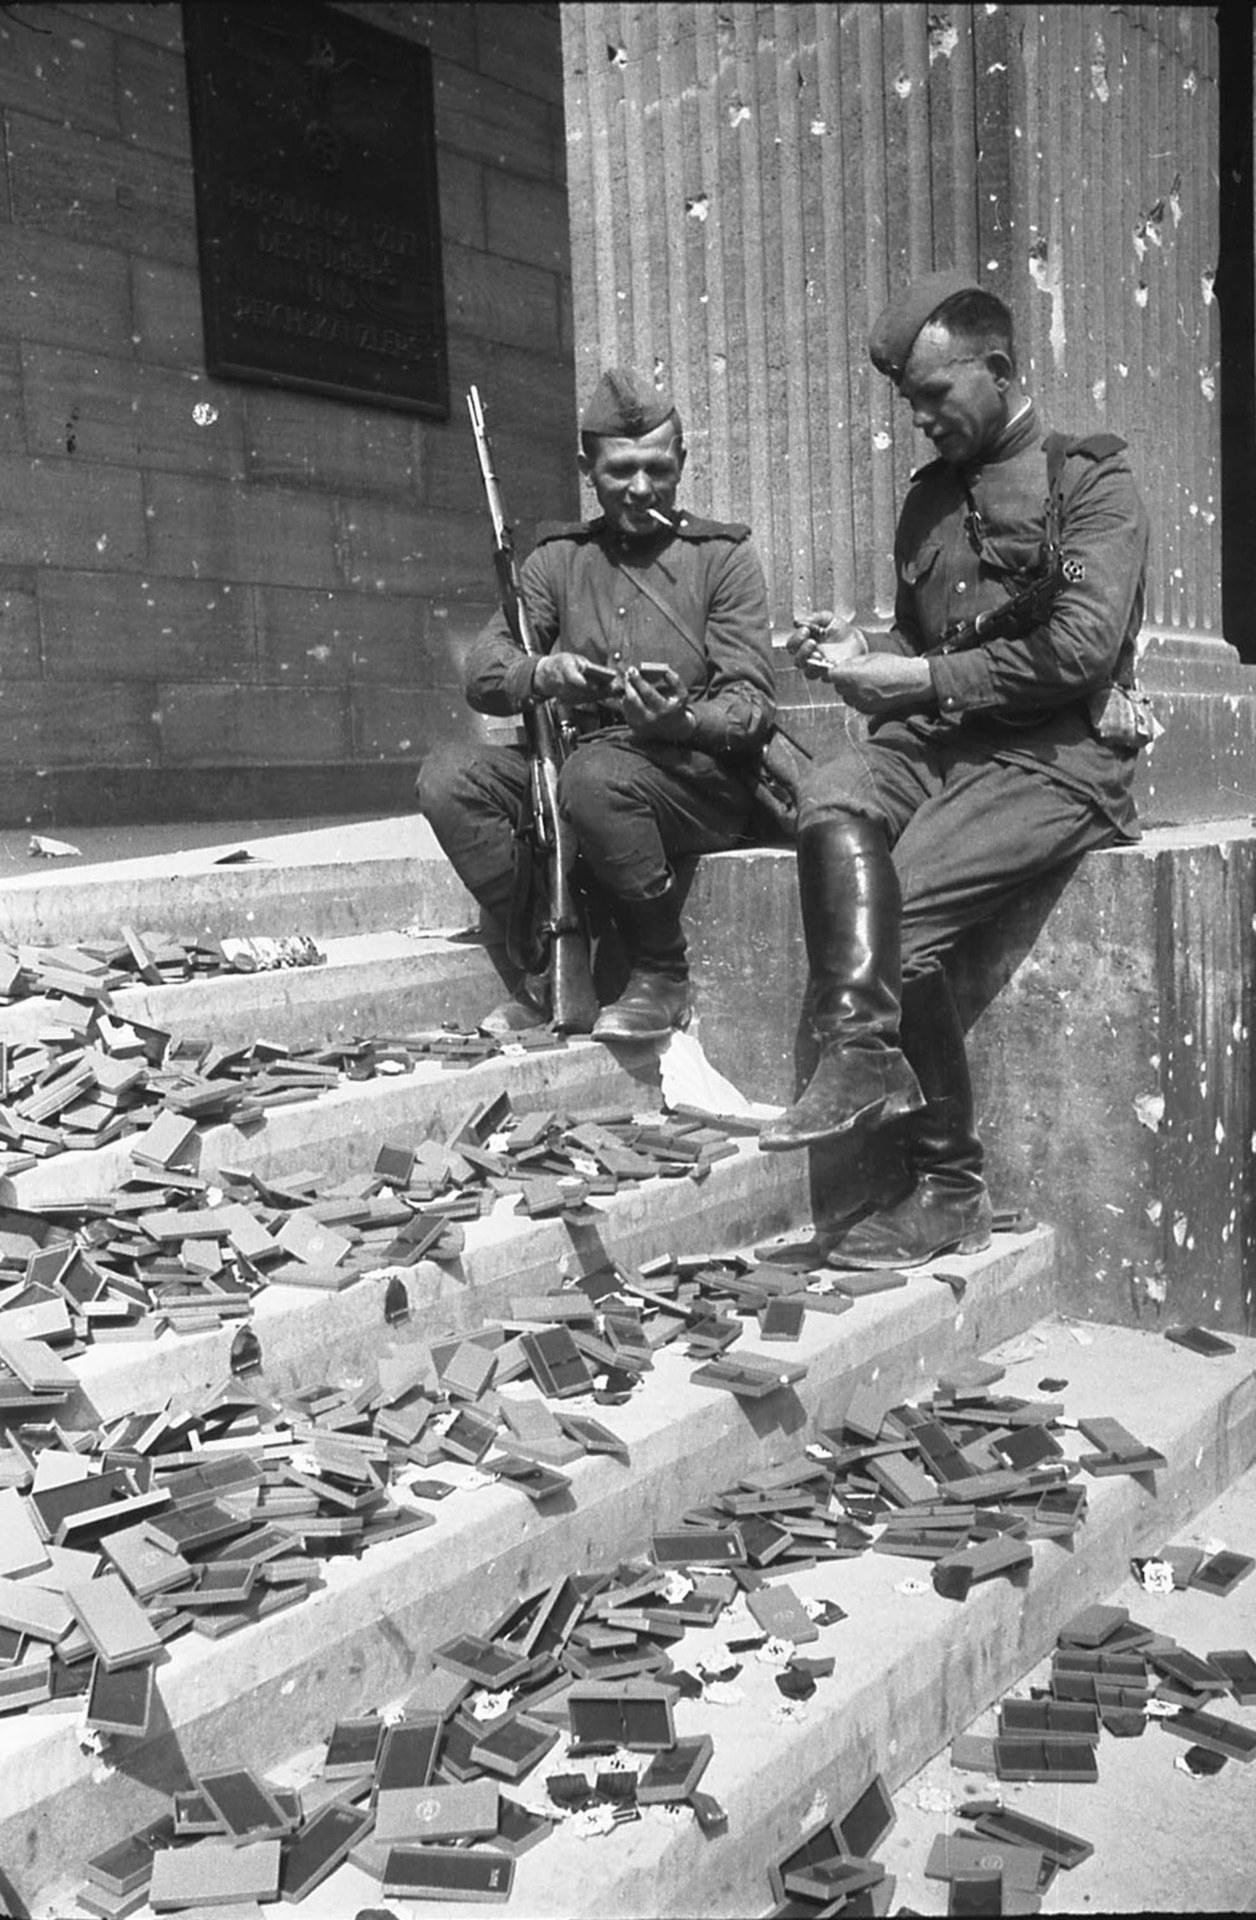 Soviet soldiers resting on the steps of the Reich Chancellery looking at German medals that have not yet been awarded, Berlin, by Evgeniy Khaldei, May 1945